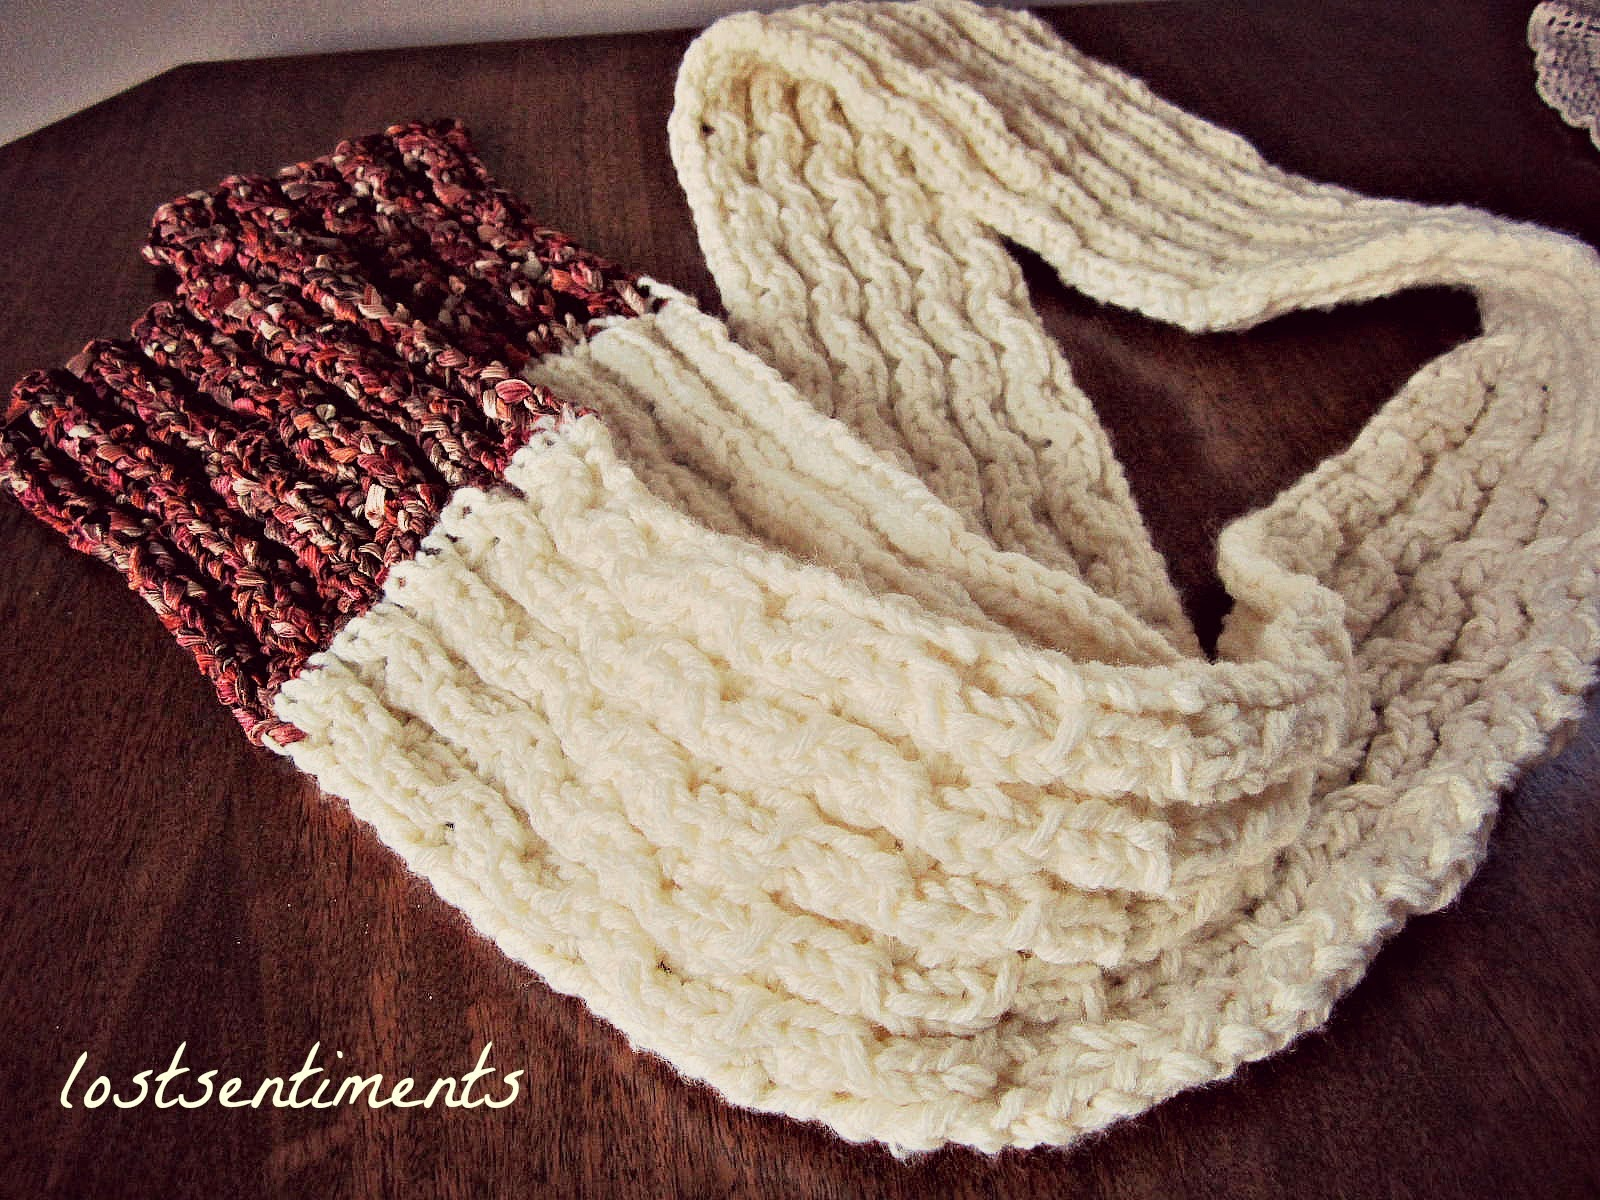 lostsentiments: Coconut Milk Peekaboo Lace Scarf Pattern - FREE ...